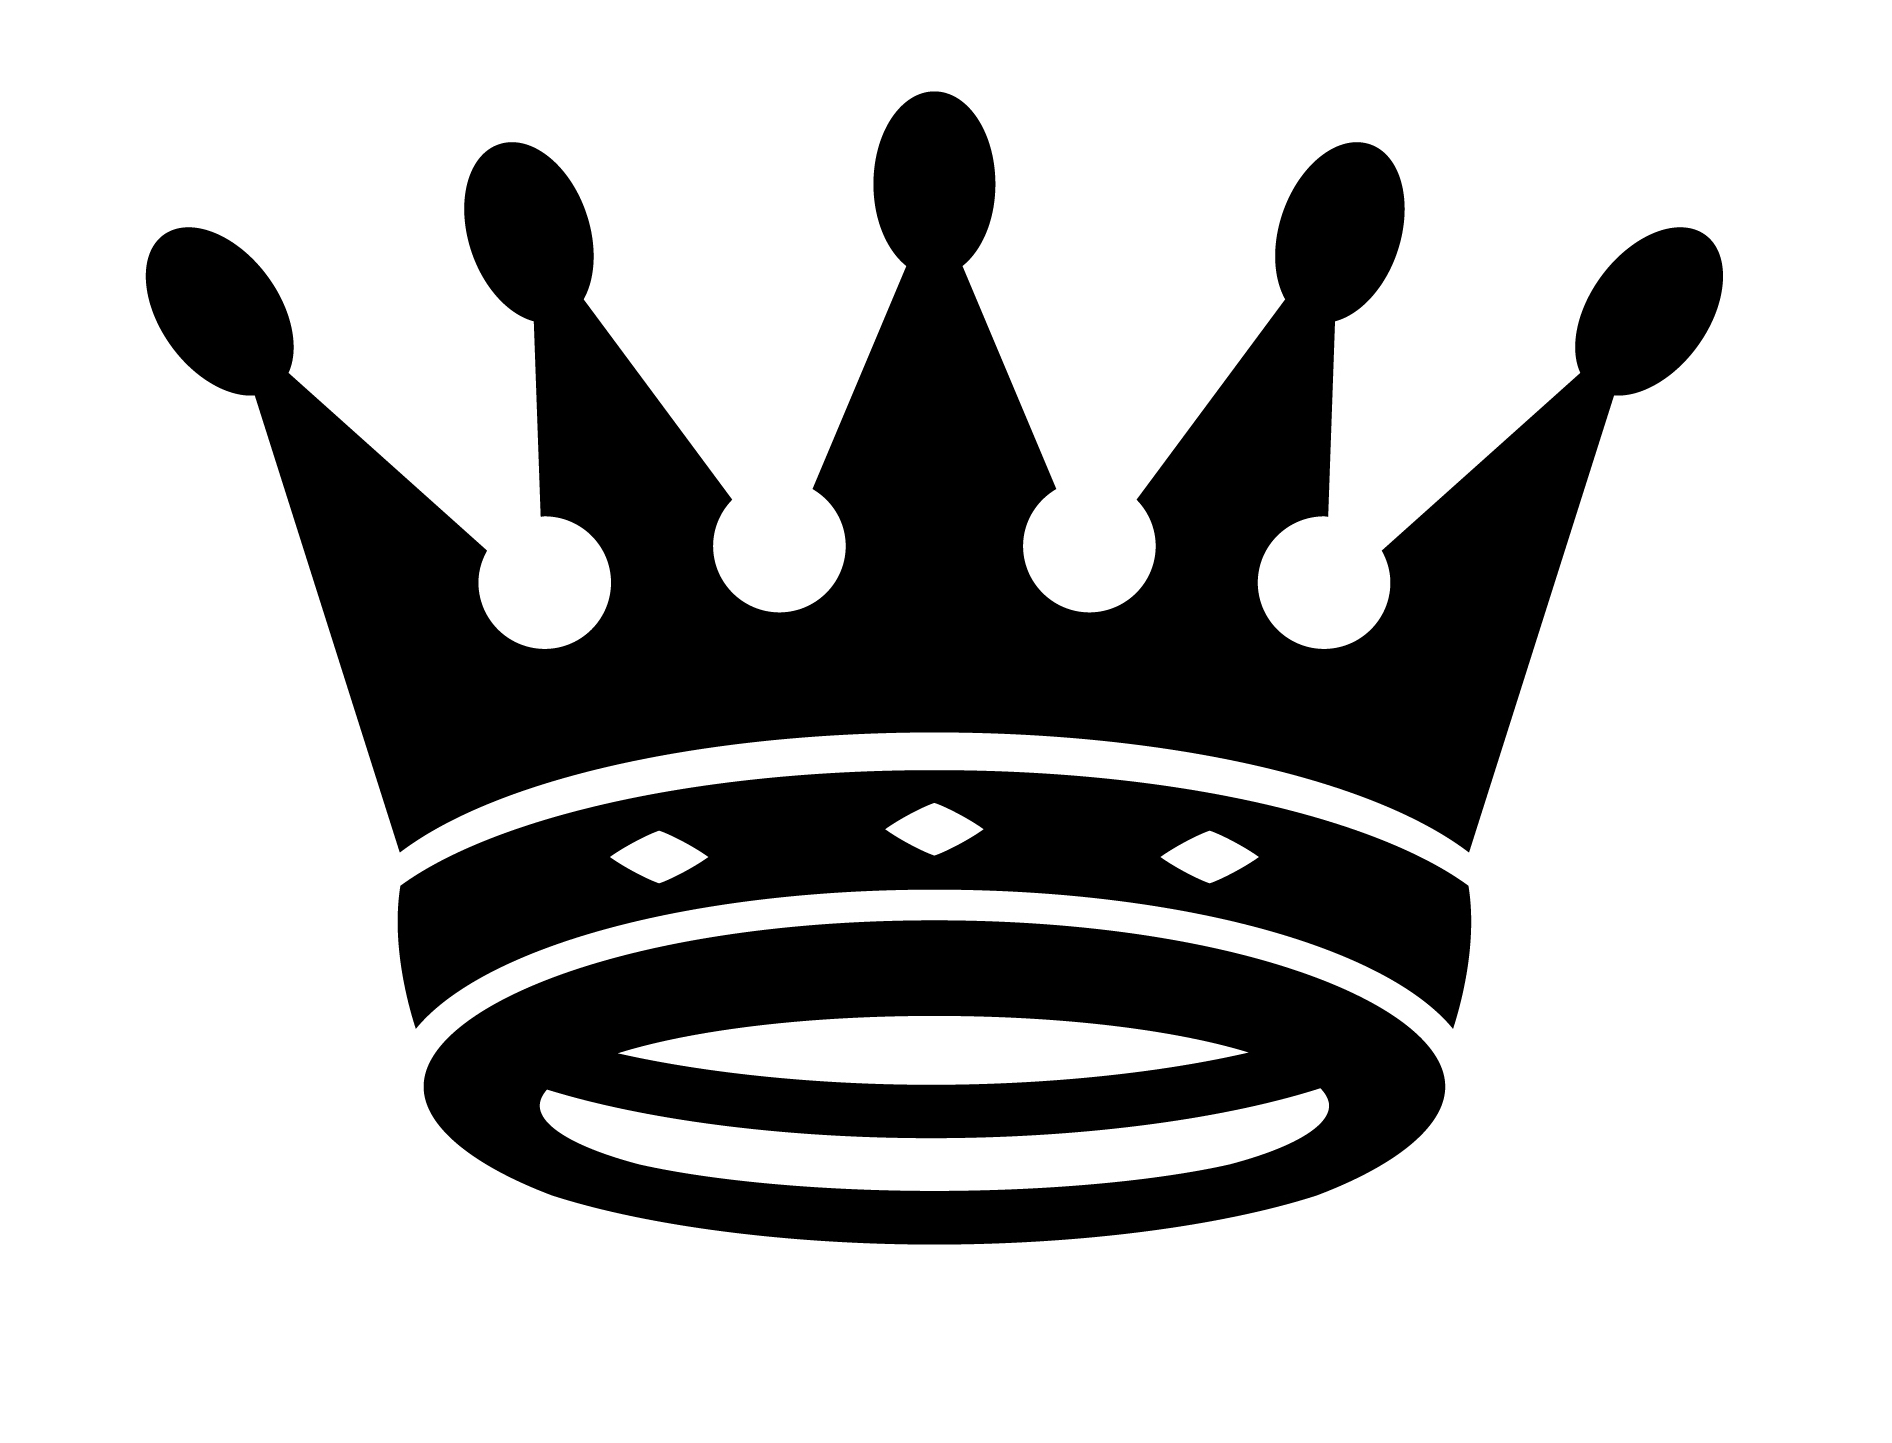 King Crown Clipart Black And White 2046189 Hd Wallpaper Backgrounds Download